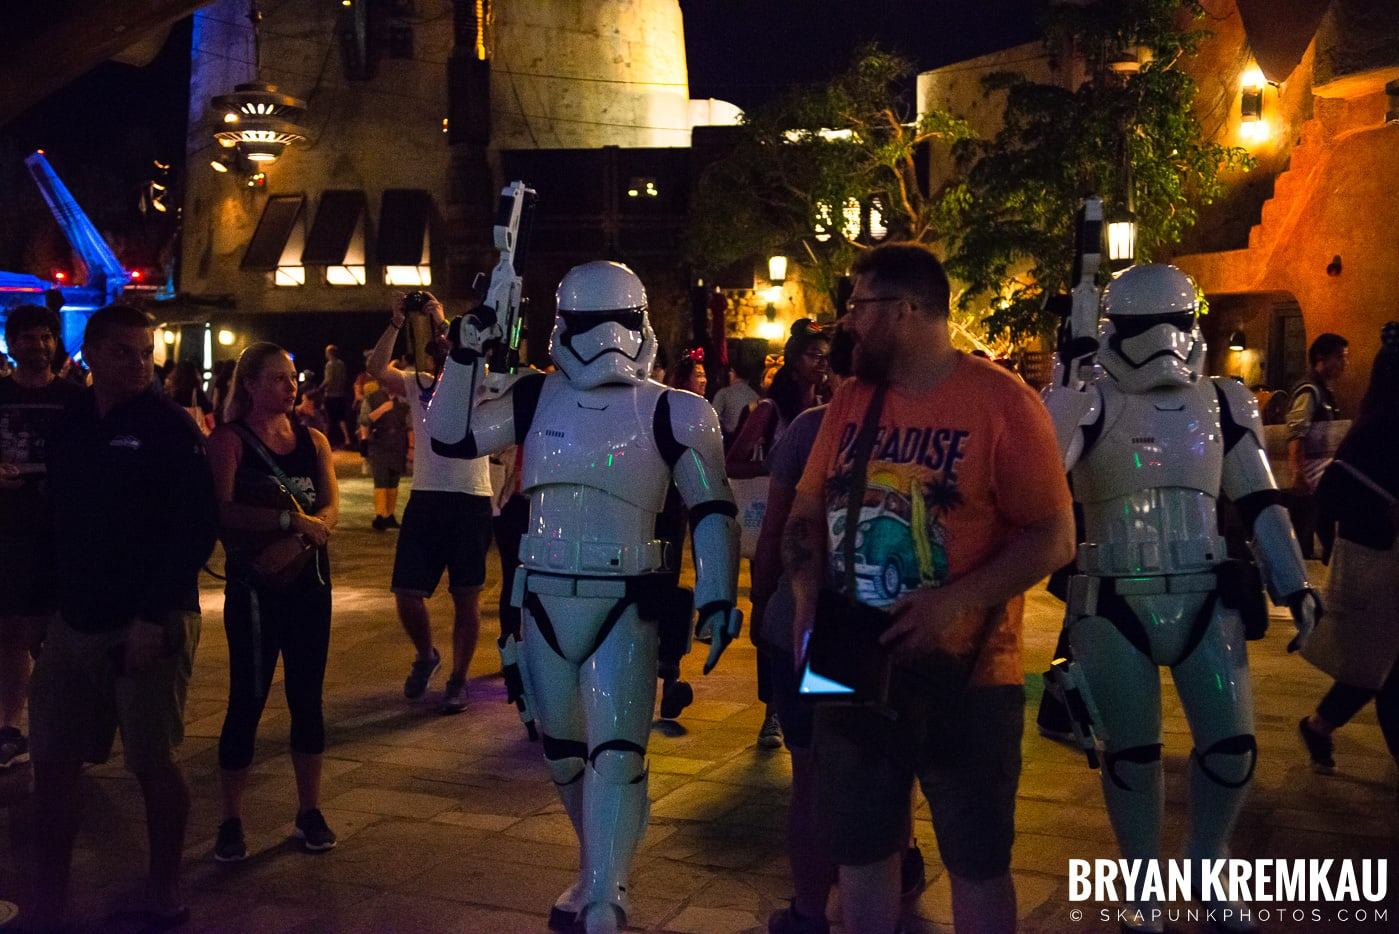 Walt Disney World Vacation: Day 5 (Animal Kingdom / Disney's Hollywood Studios) - 10.3.19 (14)